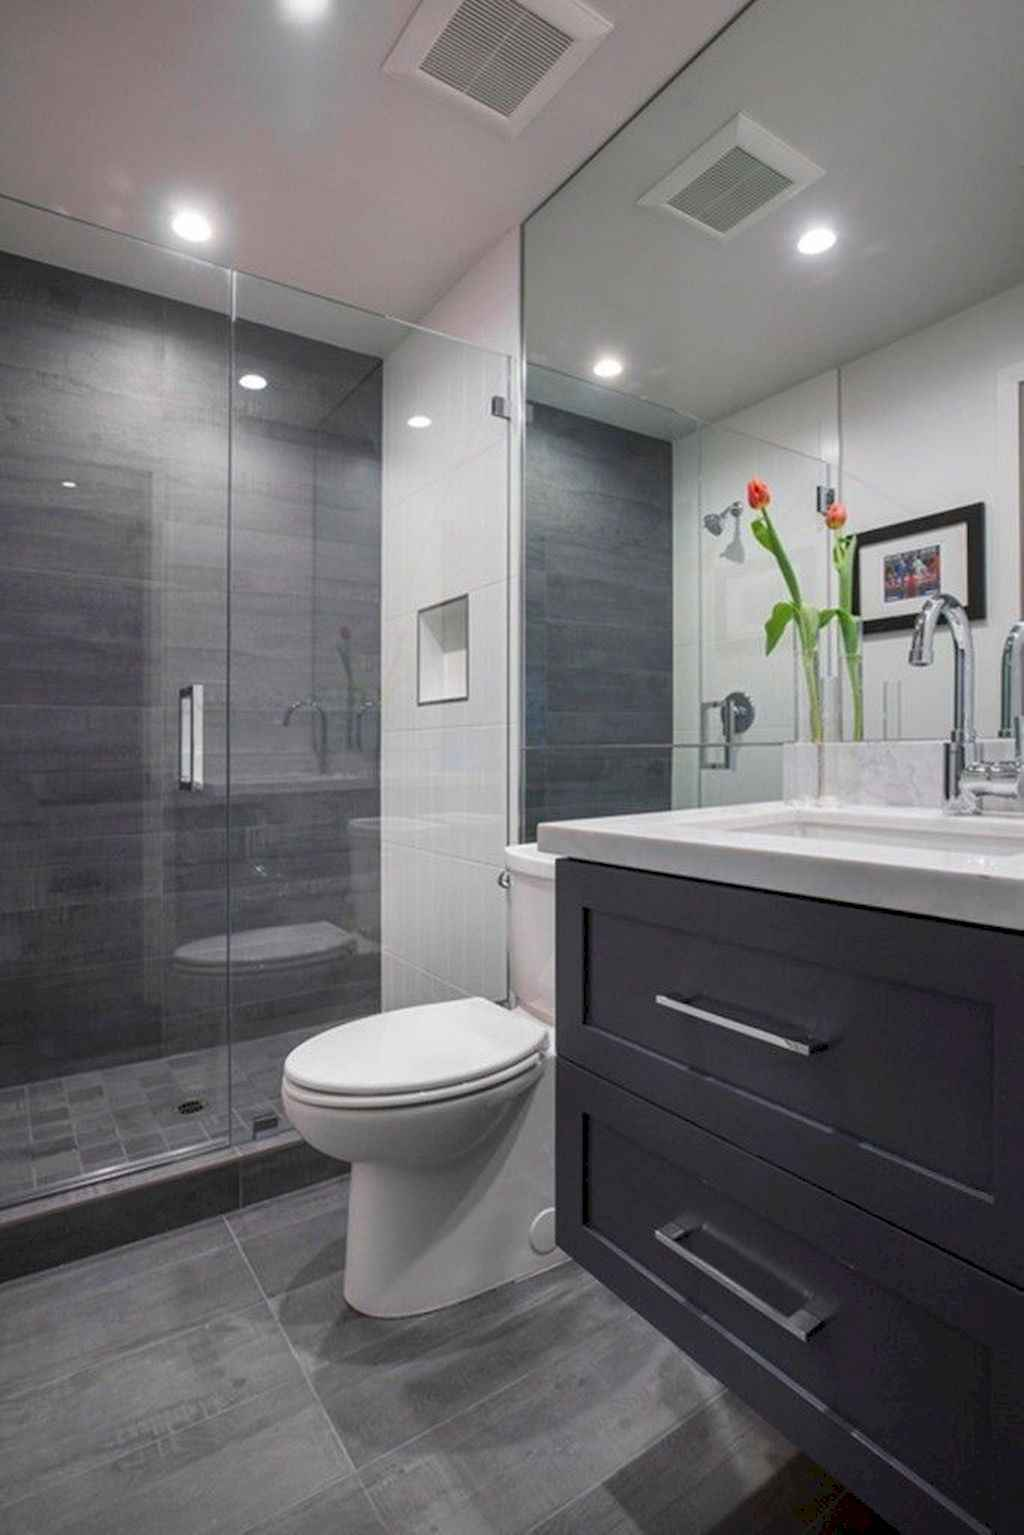 111 awesome small bathroom remodel ideas on a budget (59)